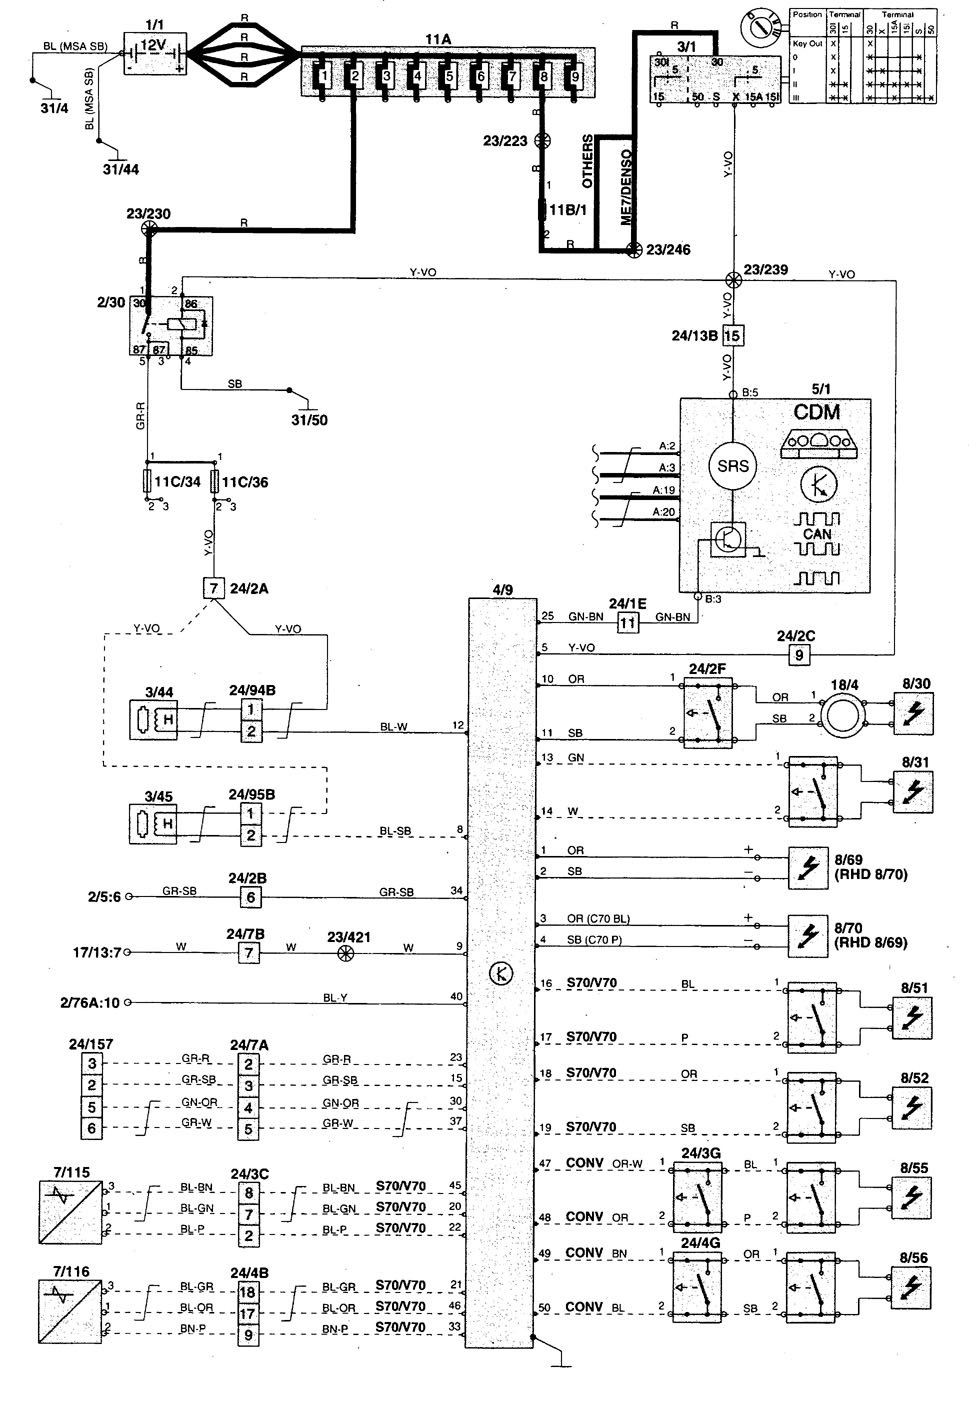 volvo s70 wiring diagram air bags 1999 volvo s70 (1999 2000) wiring diagrams air bags carknowledge  at readyjetset.co